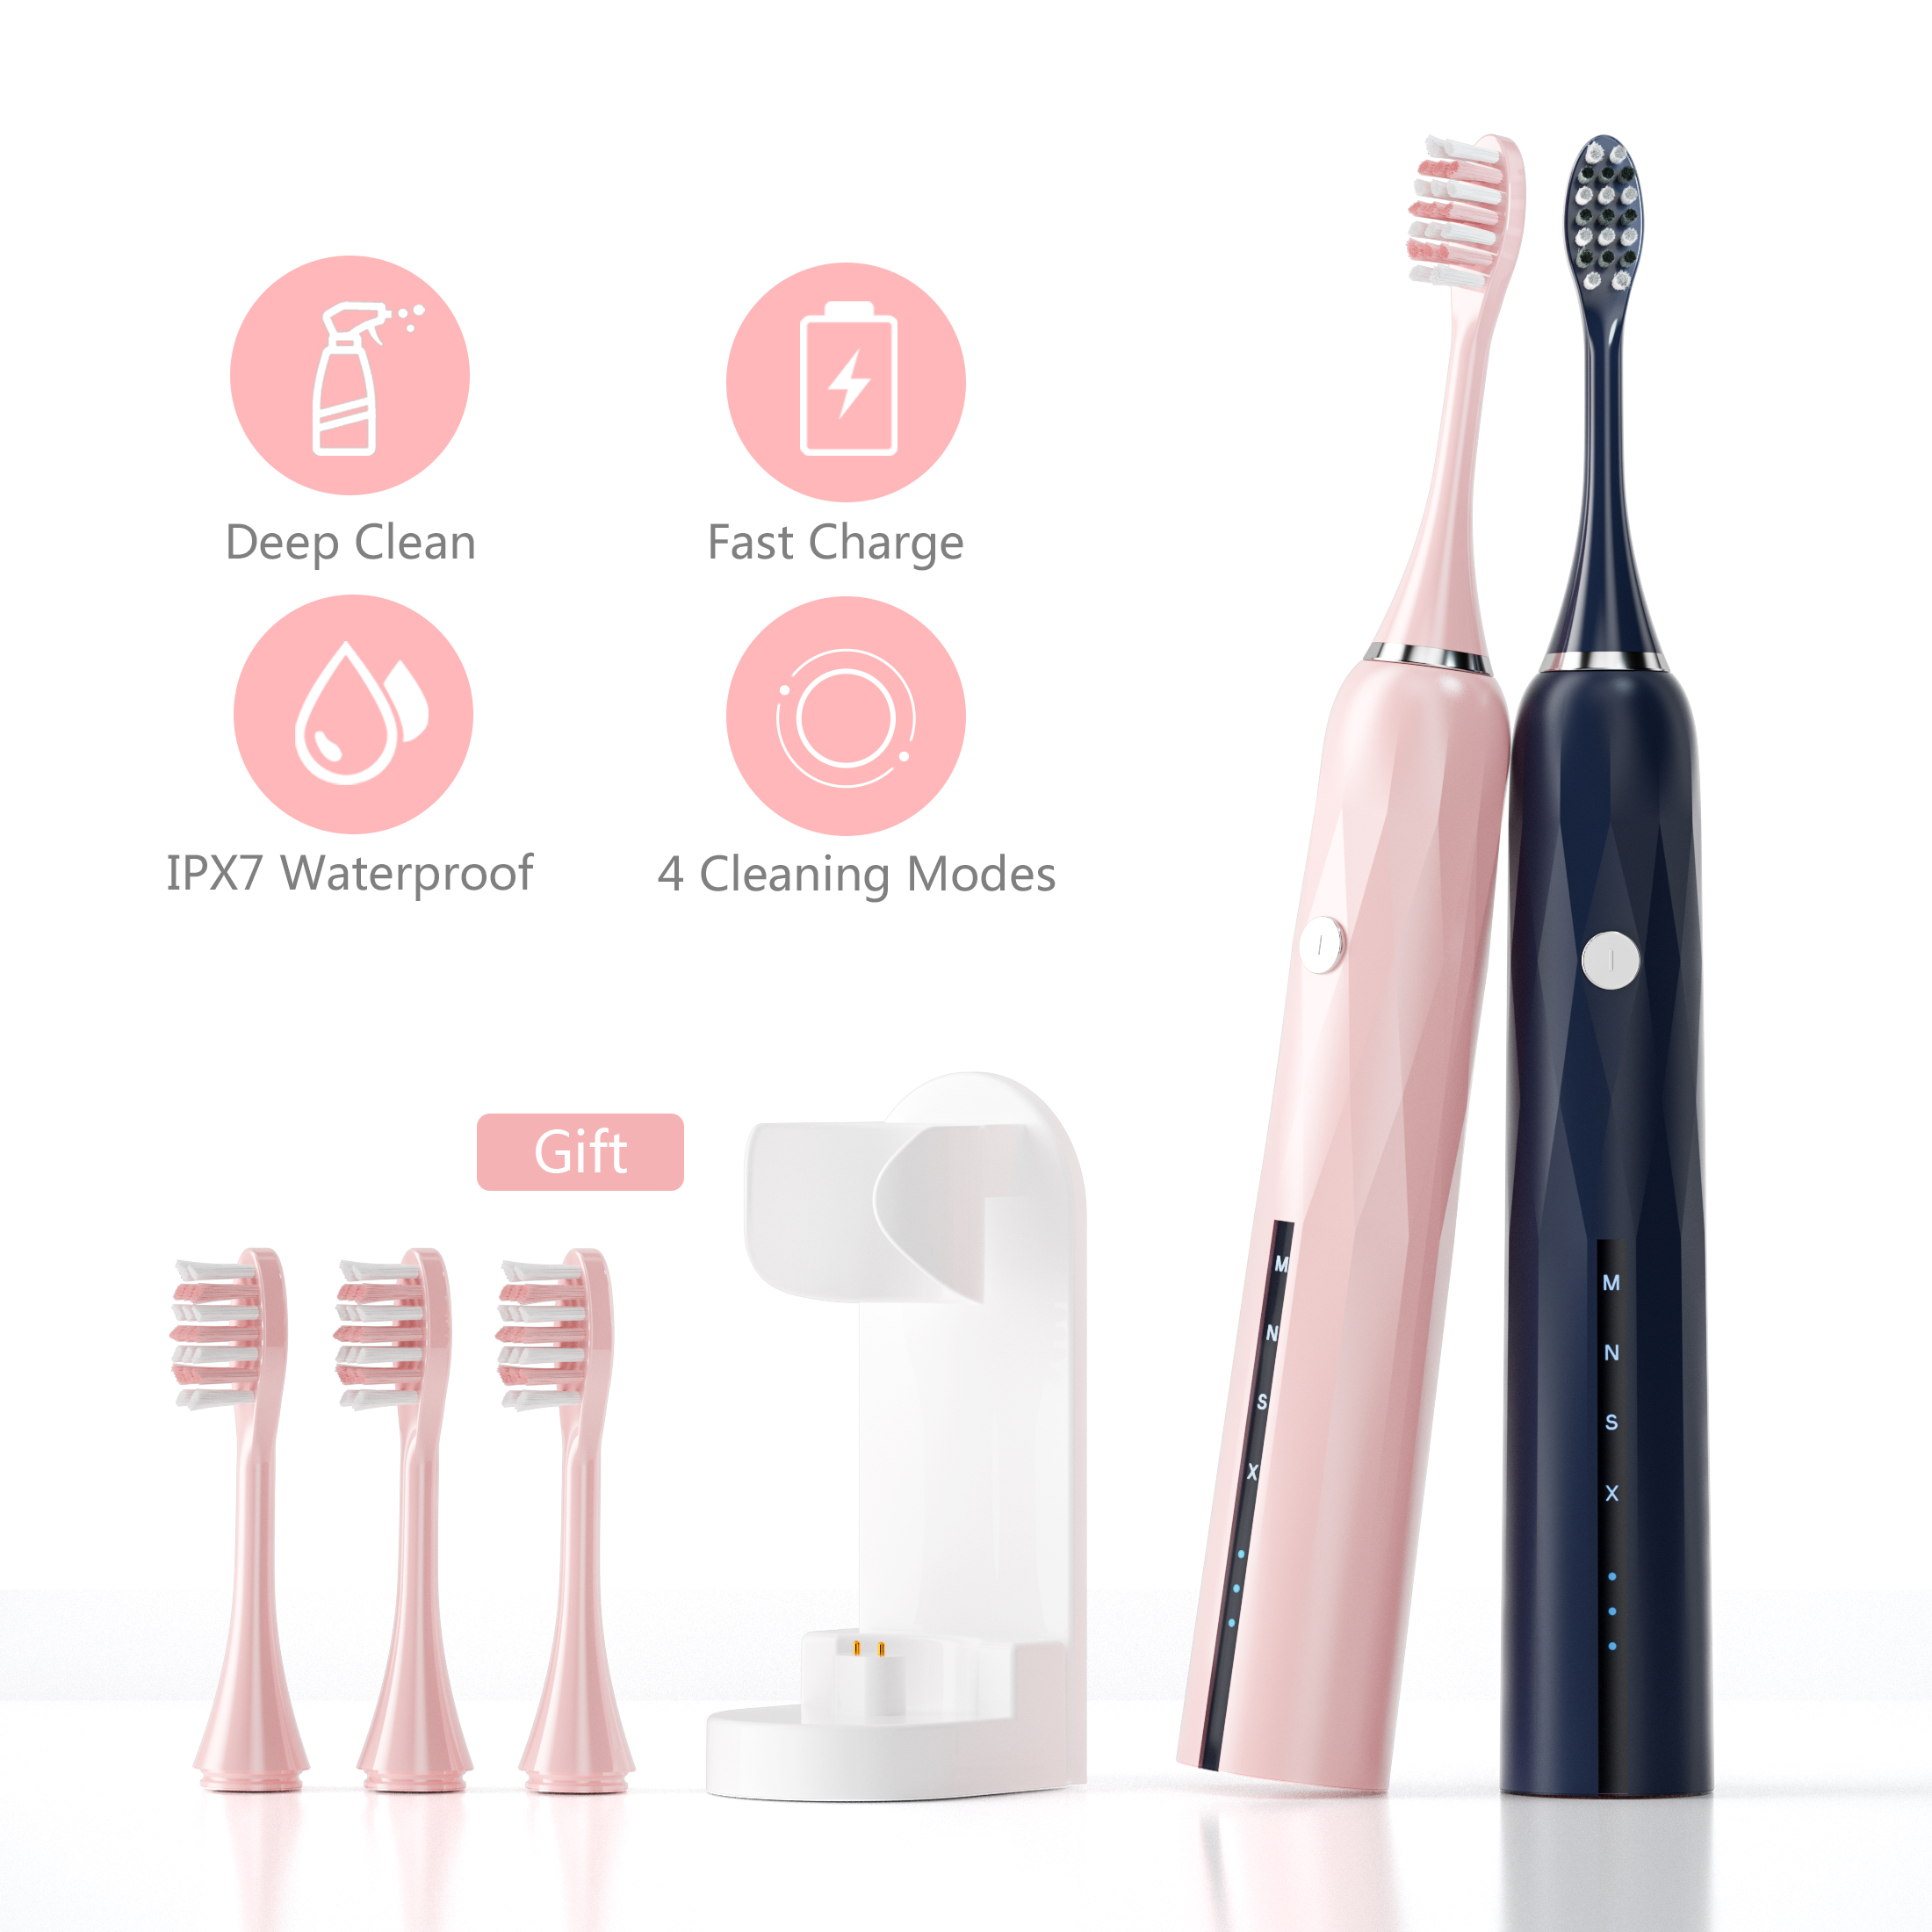 Powerful Ultrasonic Sonic Electric Toothbrush New Design USB Rechargeable Tooth Brushes Waterproof Whitening Healthy Best Gift-in Electric Toothbrushes from Home Appliances